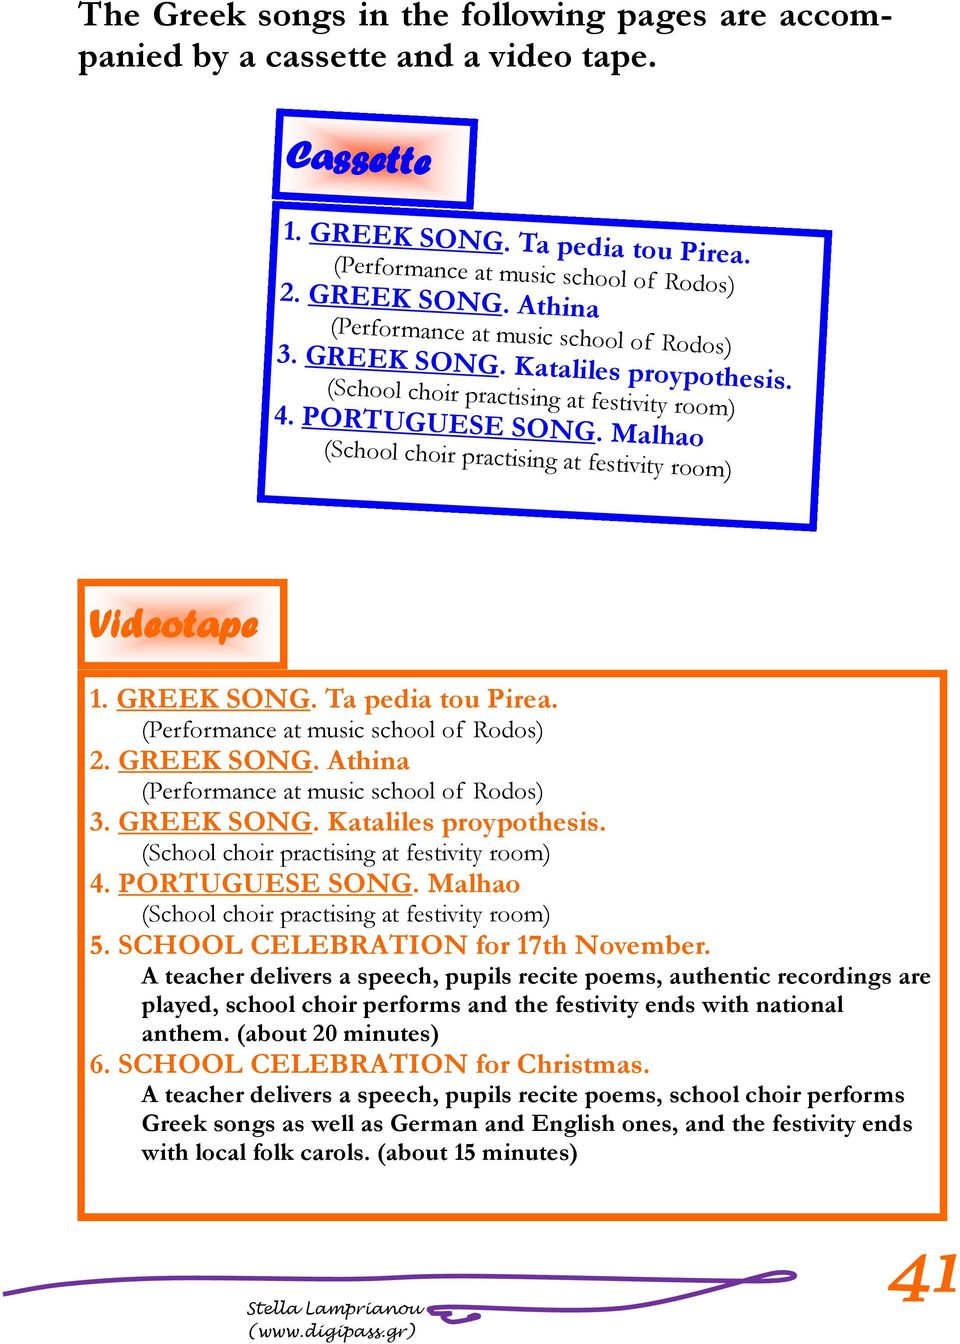 (Performance at music school of Rodos) 2. GREEK SONG. Athina (Performance at music school of Rodos) 3. GREEK SONG. Kataliles proypothesis. (School choir practising at festivity room) 4.